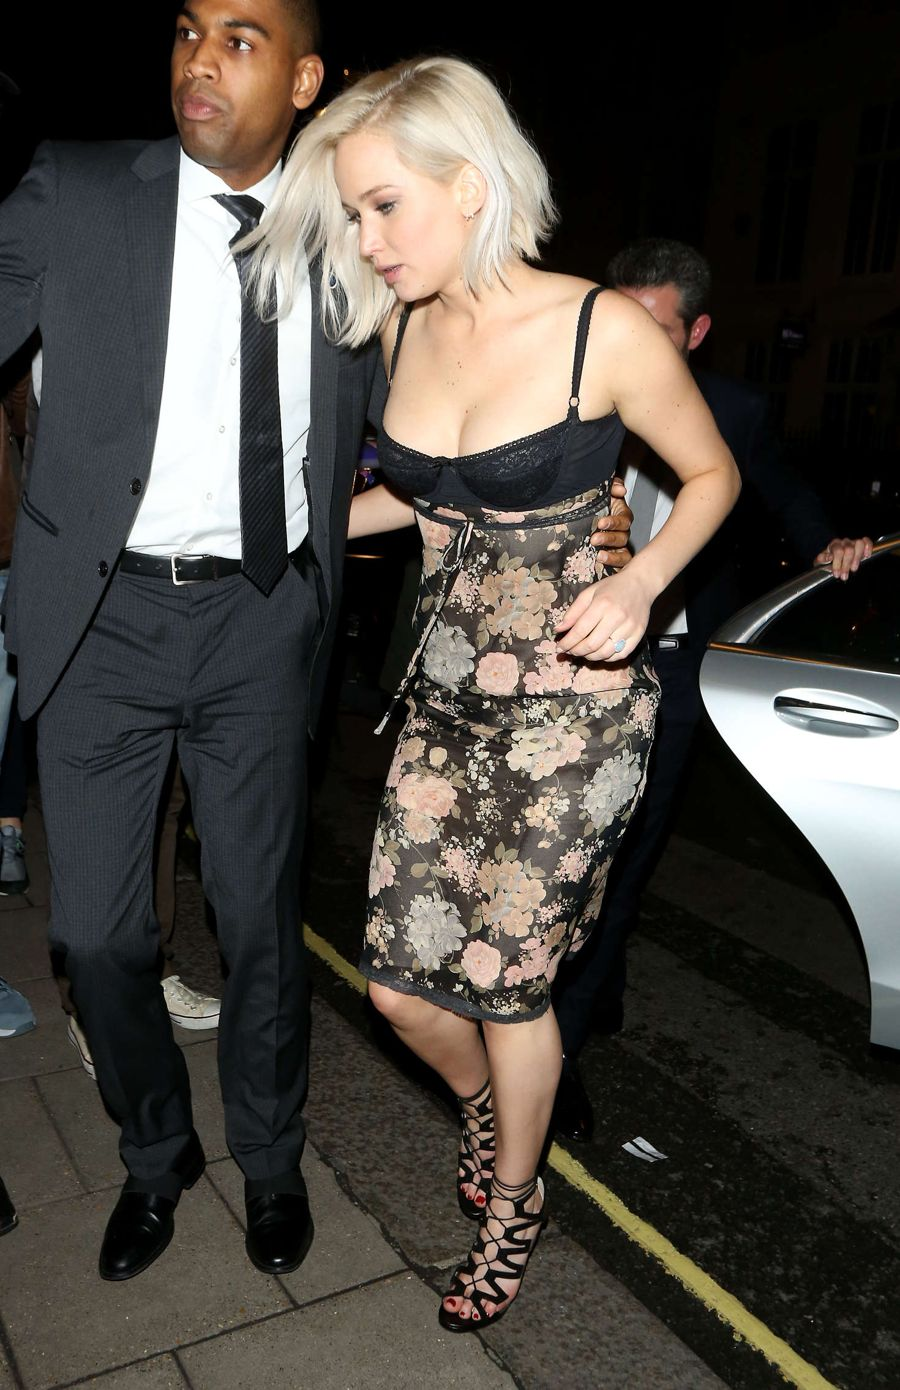 Jennifer Lawrence in Tight Dress out in London